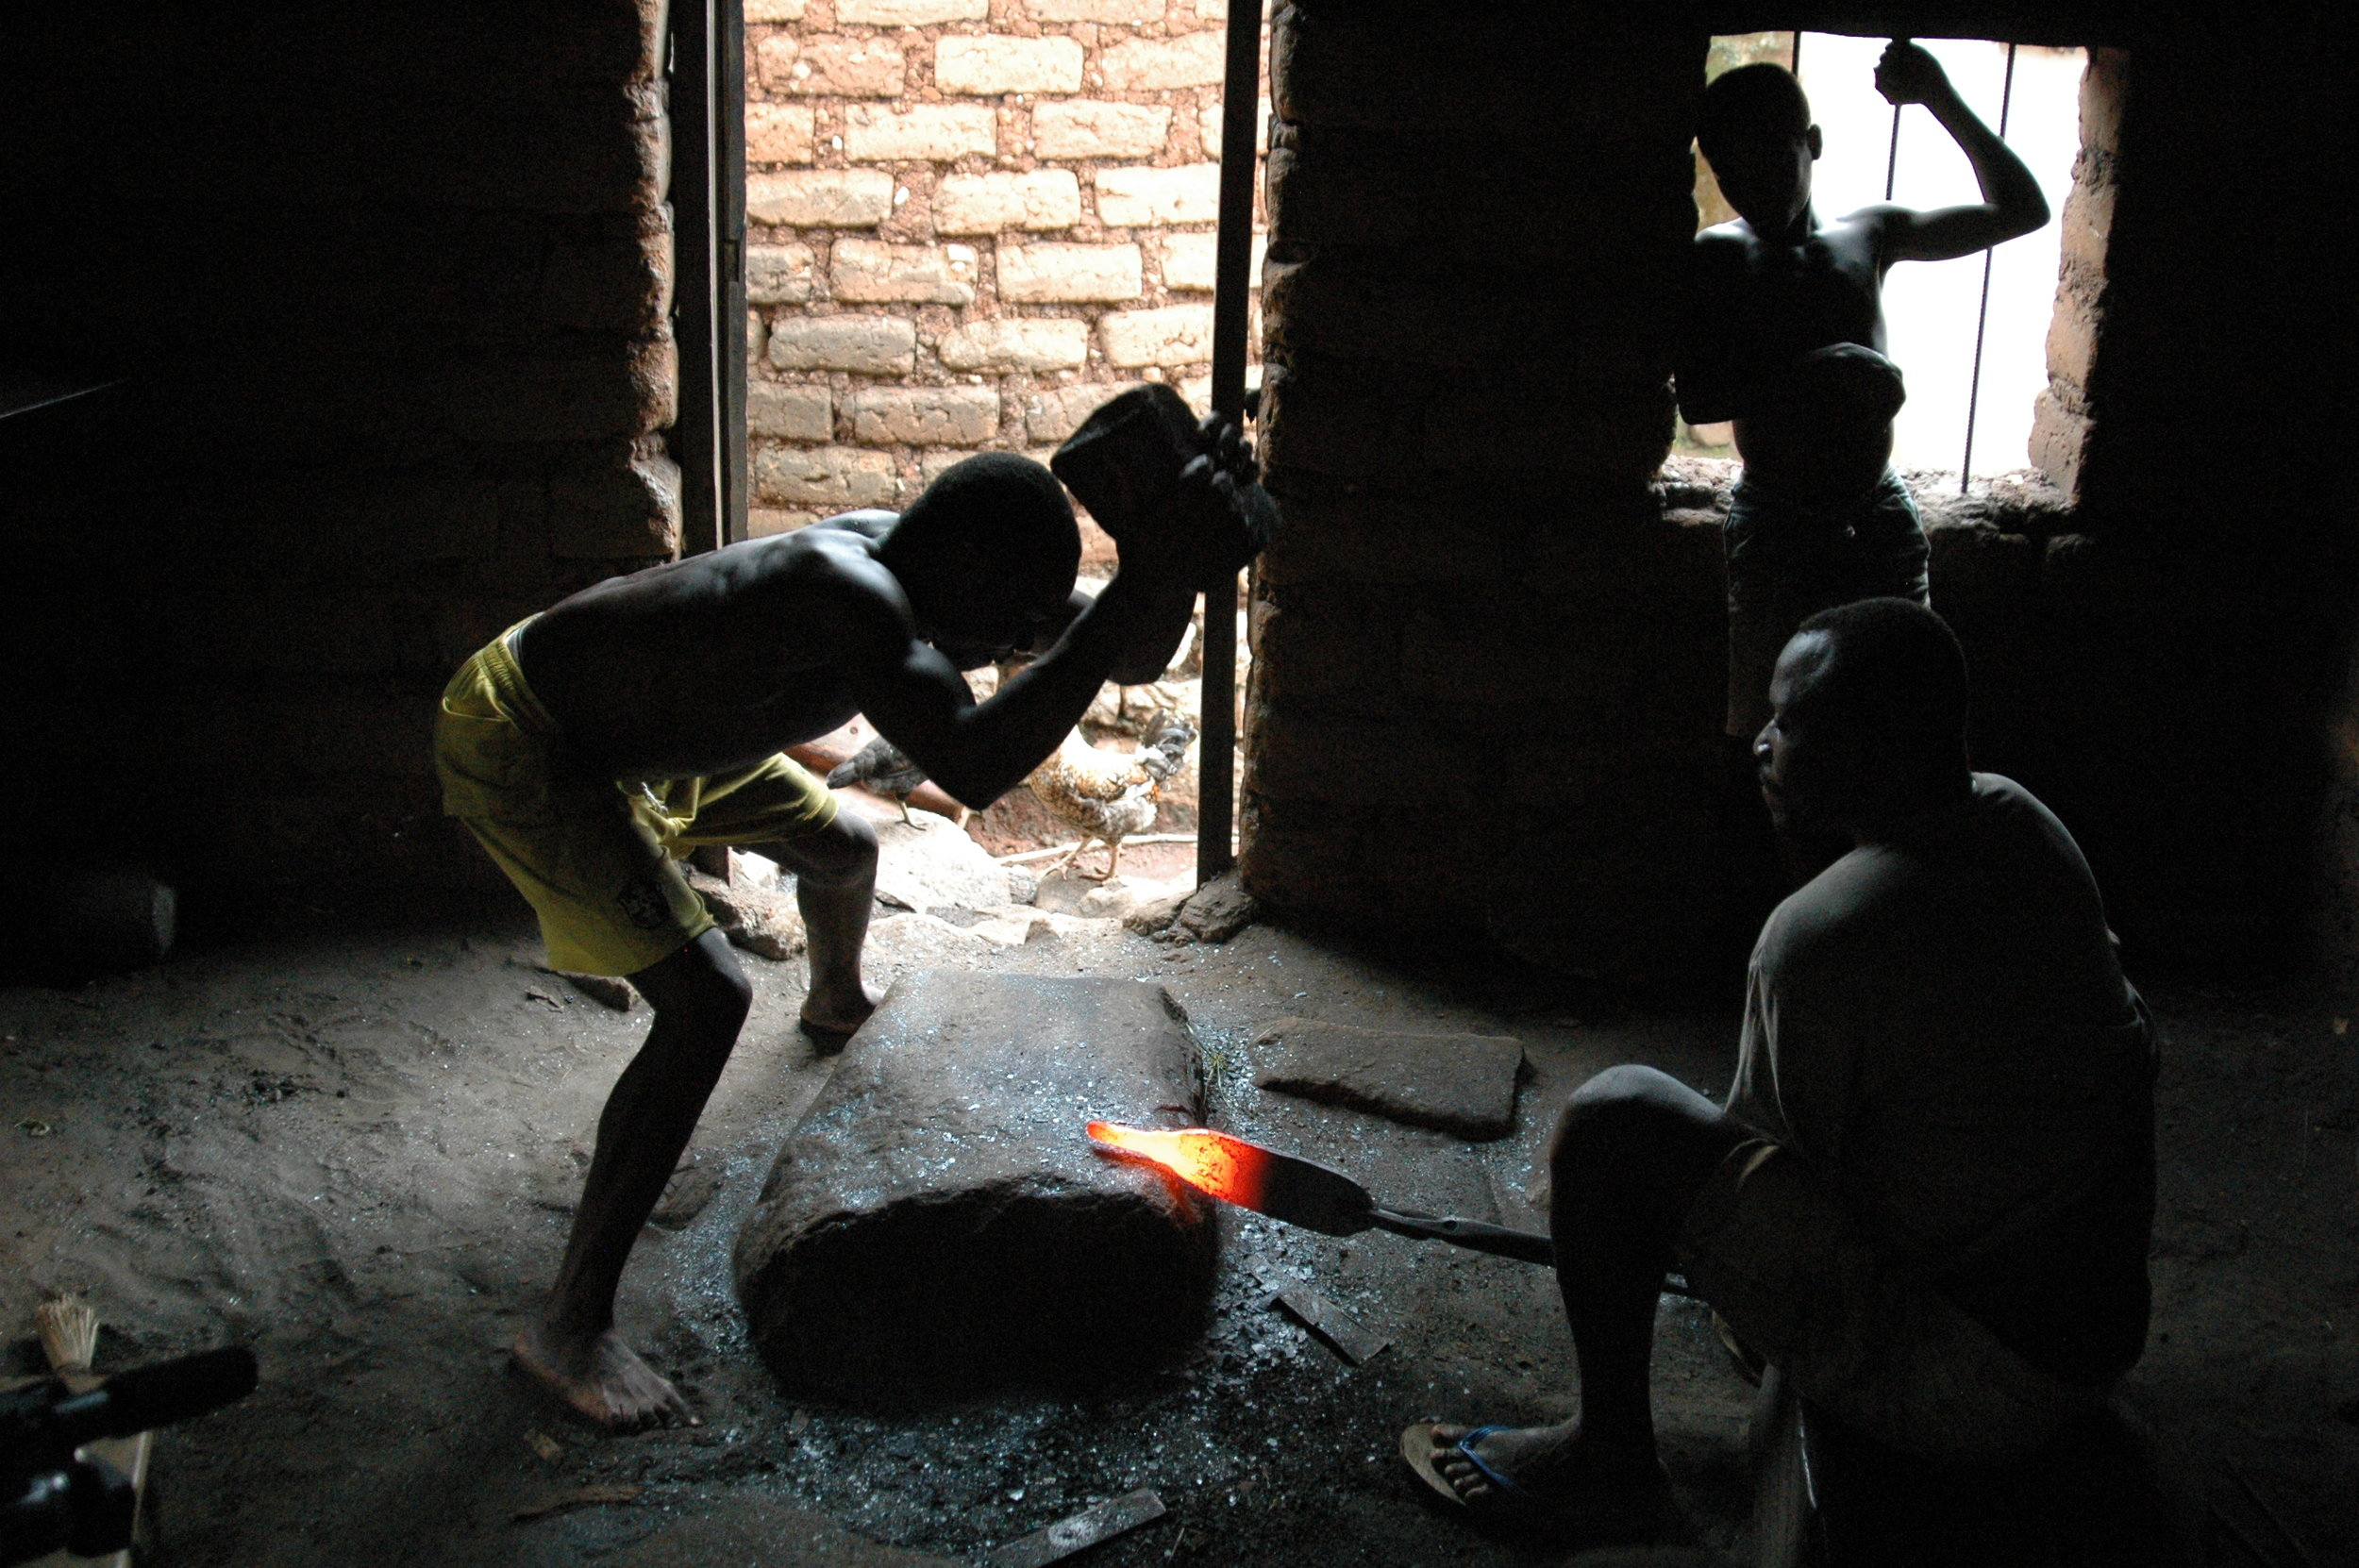 Kossi Kao and assistant,Essozimna Ide, rough out initial forging of an initiation bell. Tchare, Togo. © Tom Joyce, 2010.